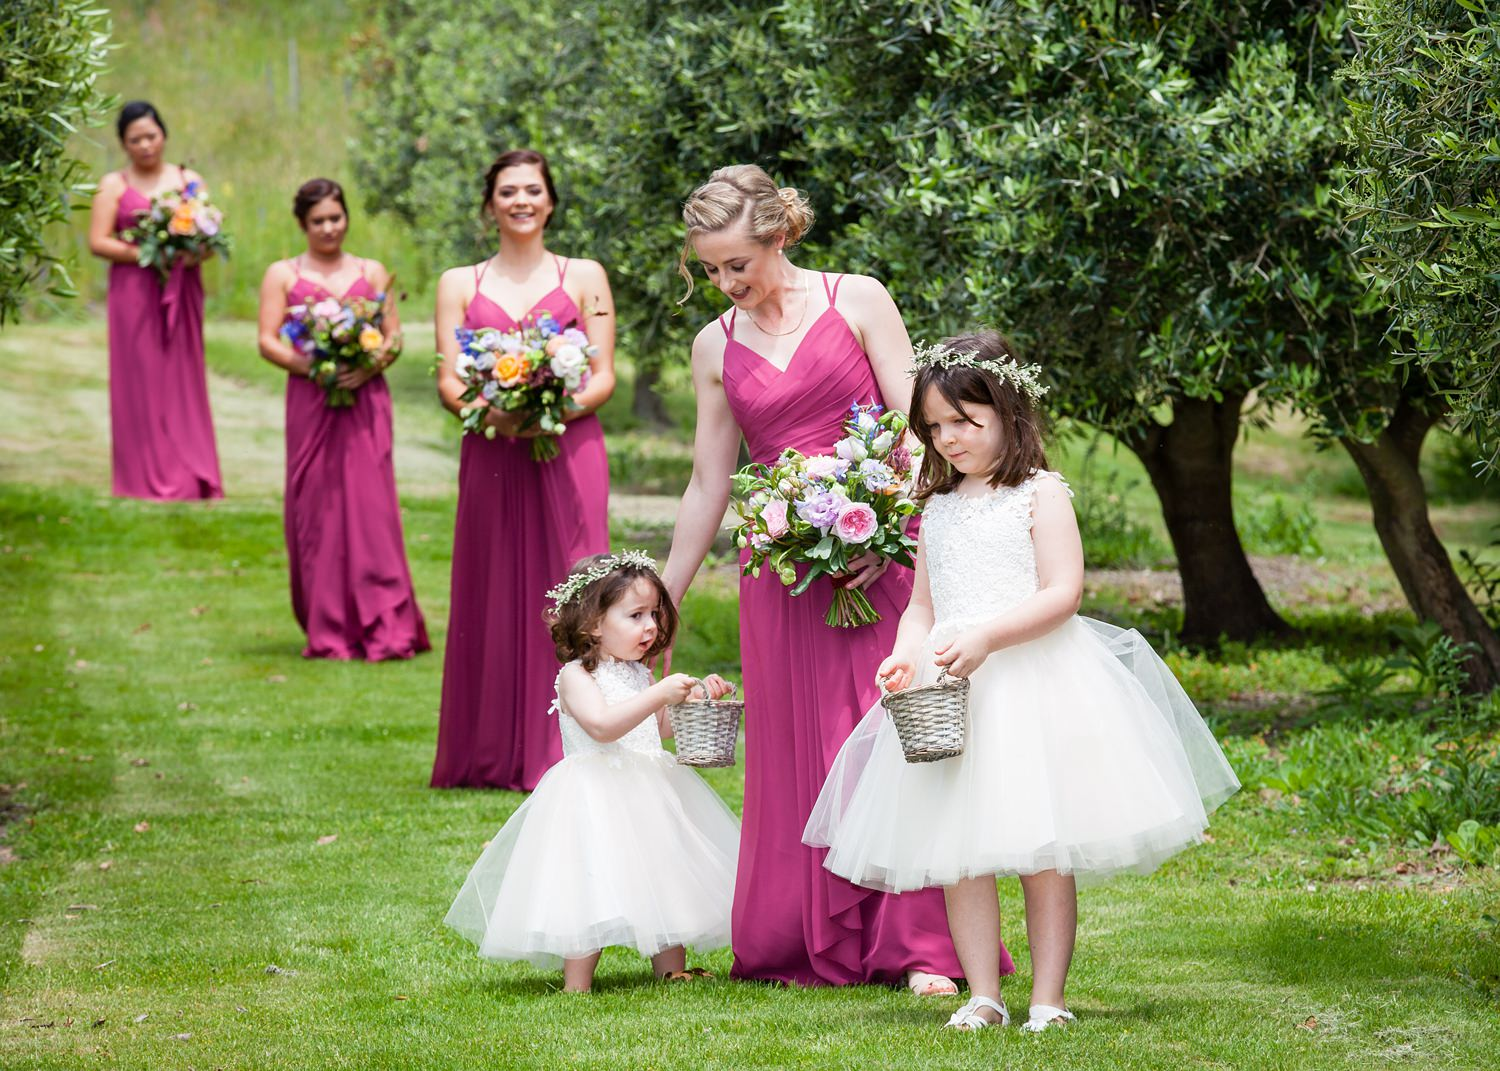 Flowergirls and bridesmaids